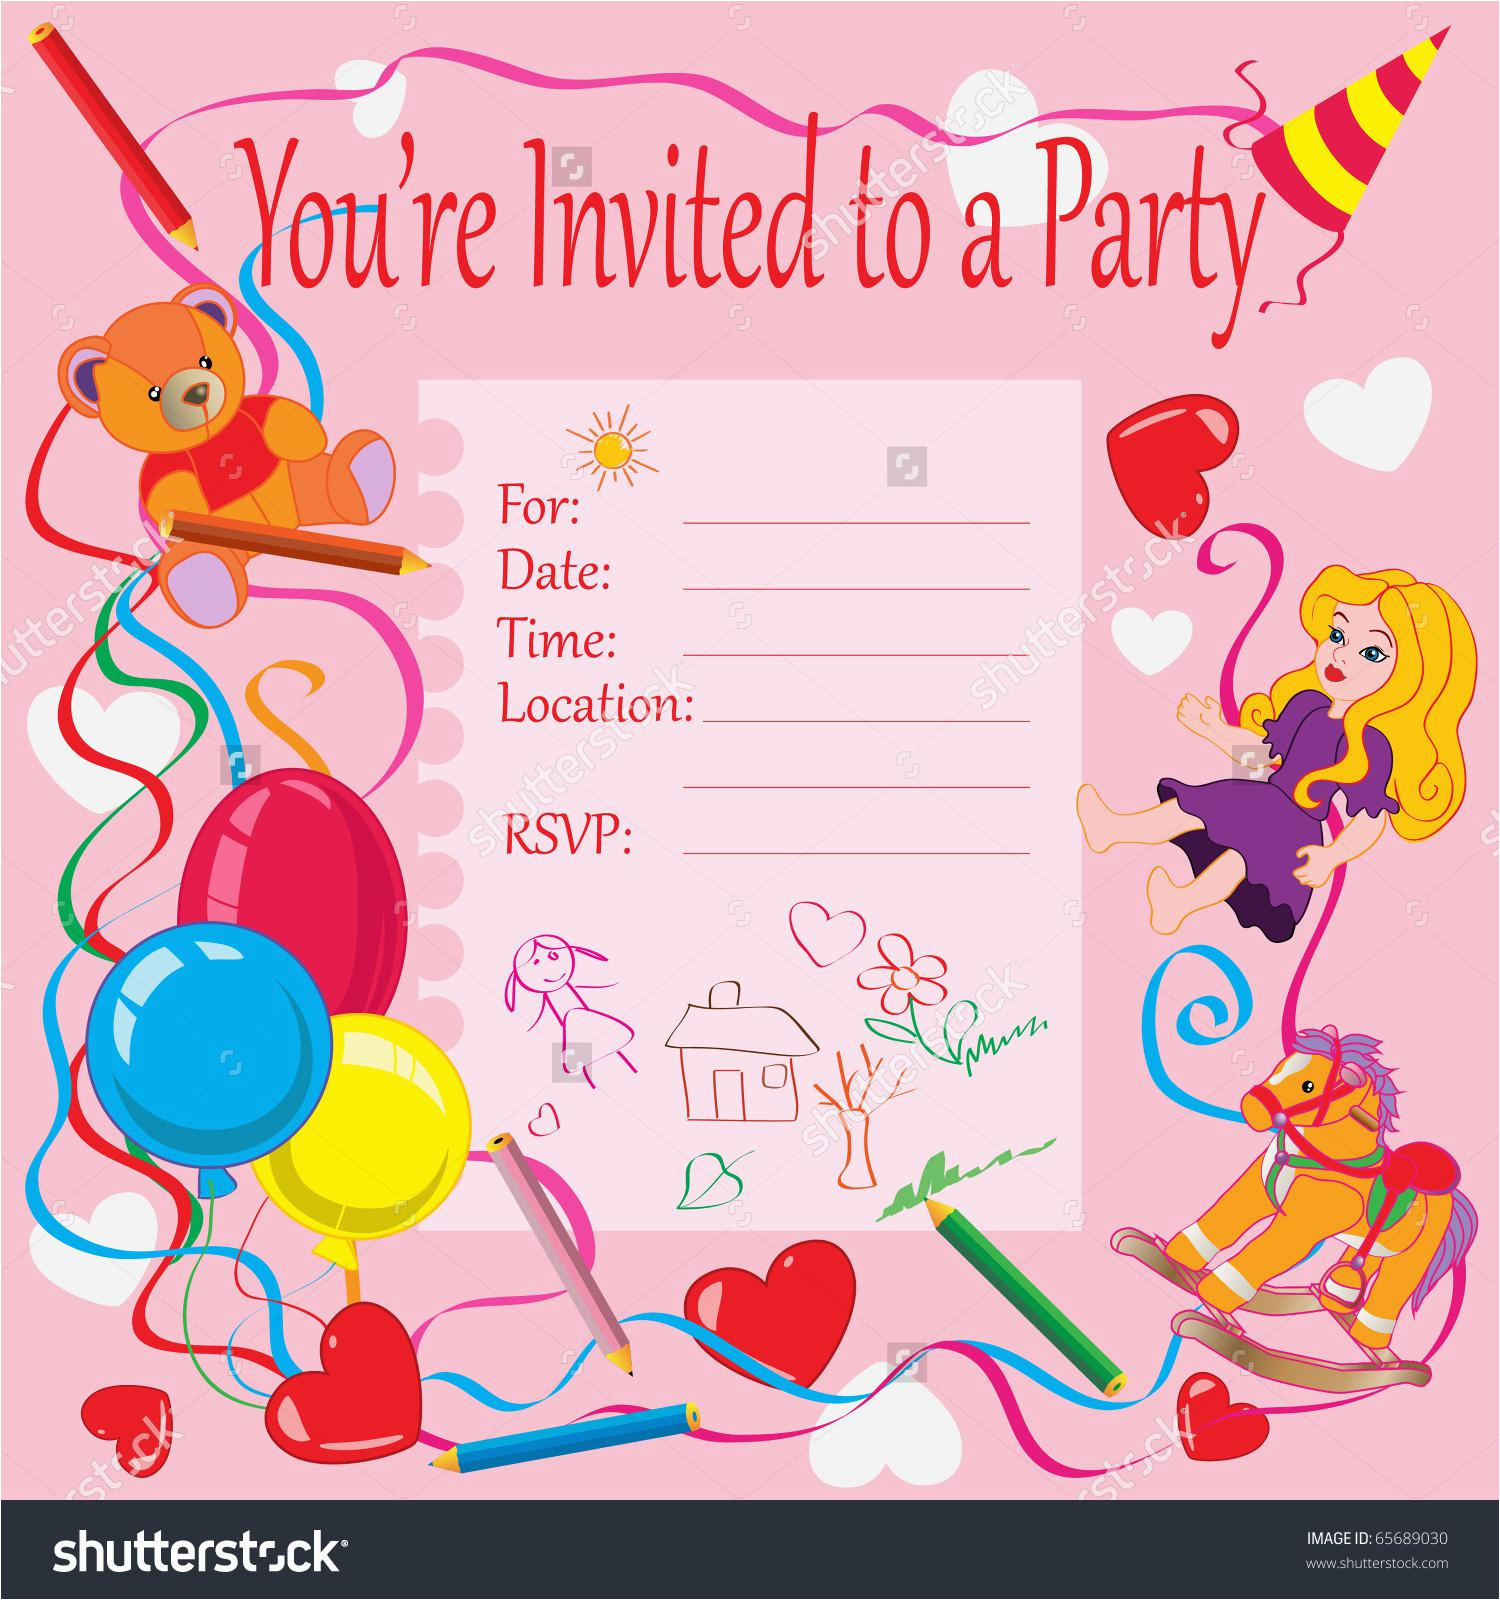 Create Birthday Invitations Online Free Printable Make Your Own Party